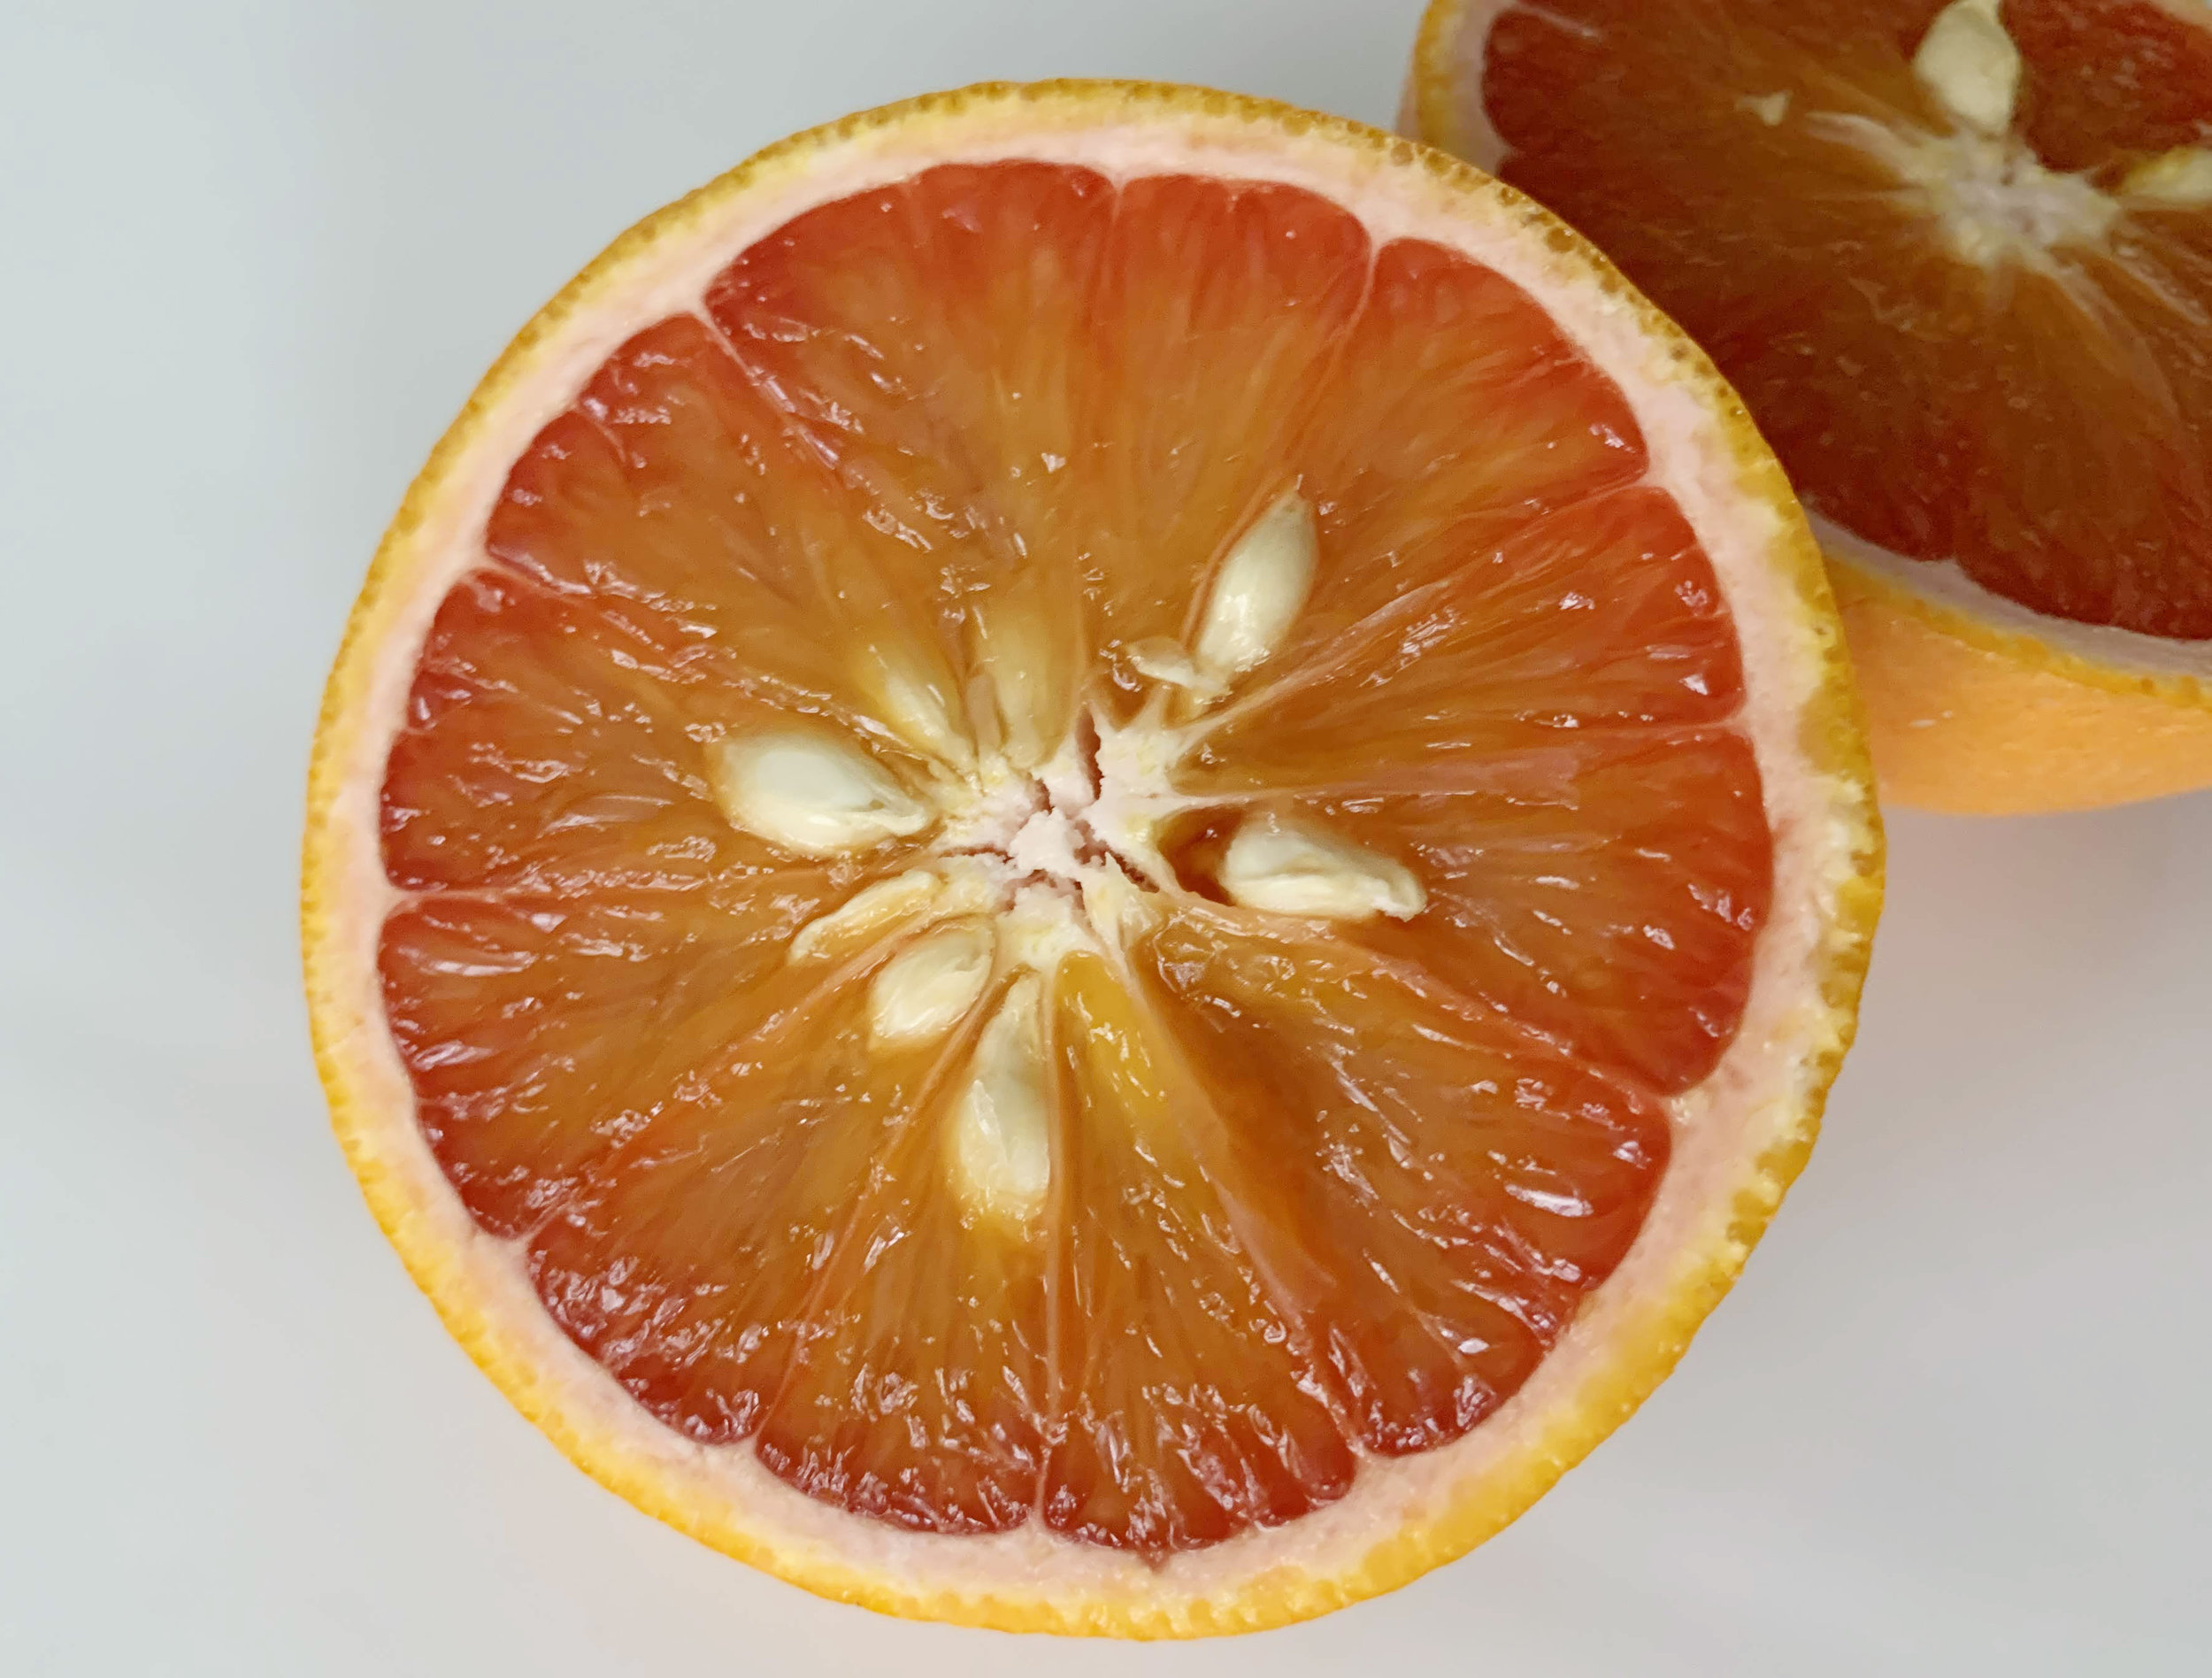 Orange Varieties - The oranges here are called Mango oranges. They are sweet and slightly floral.